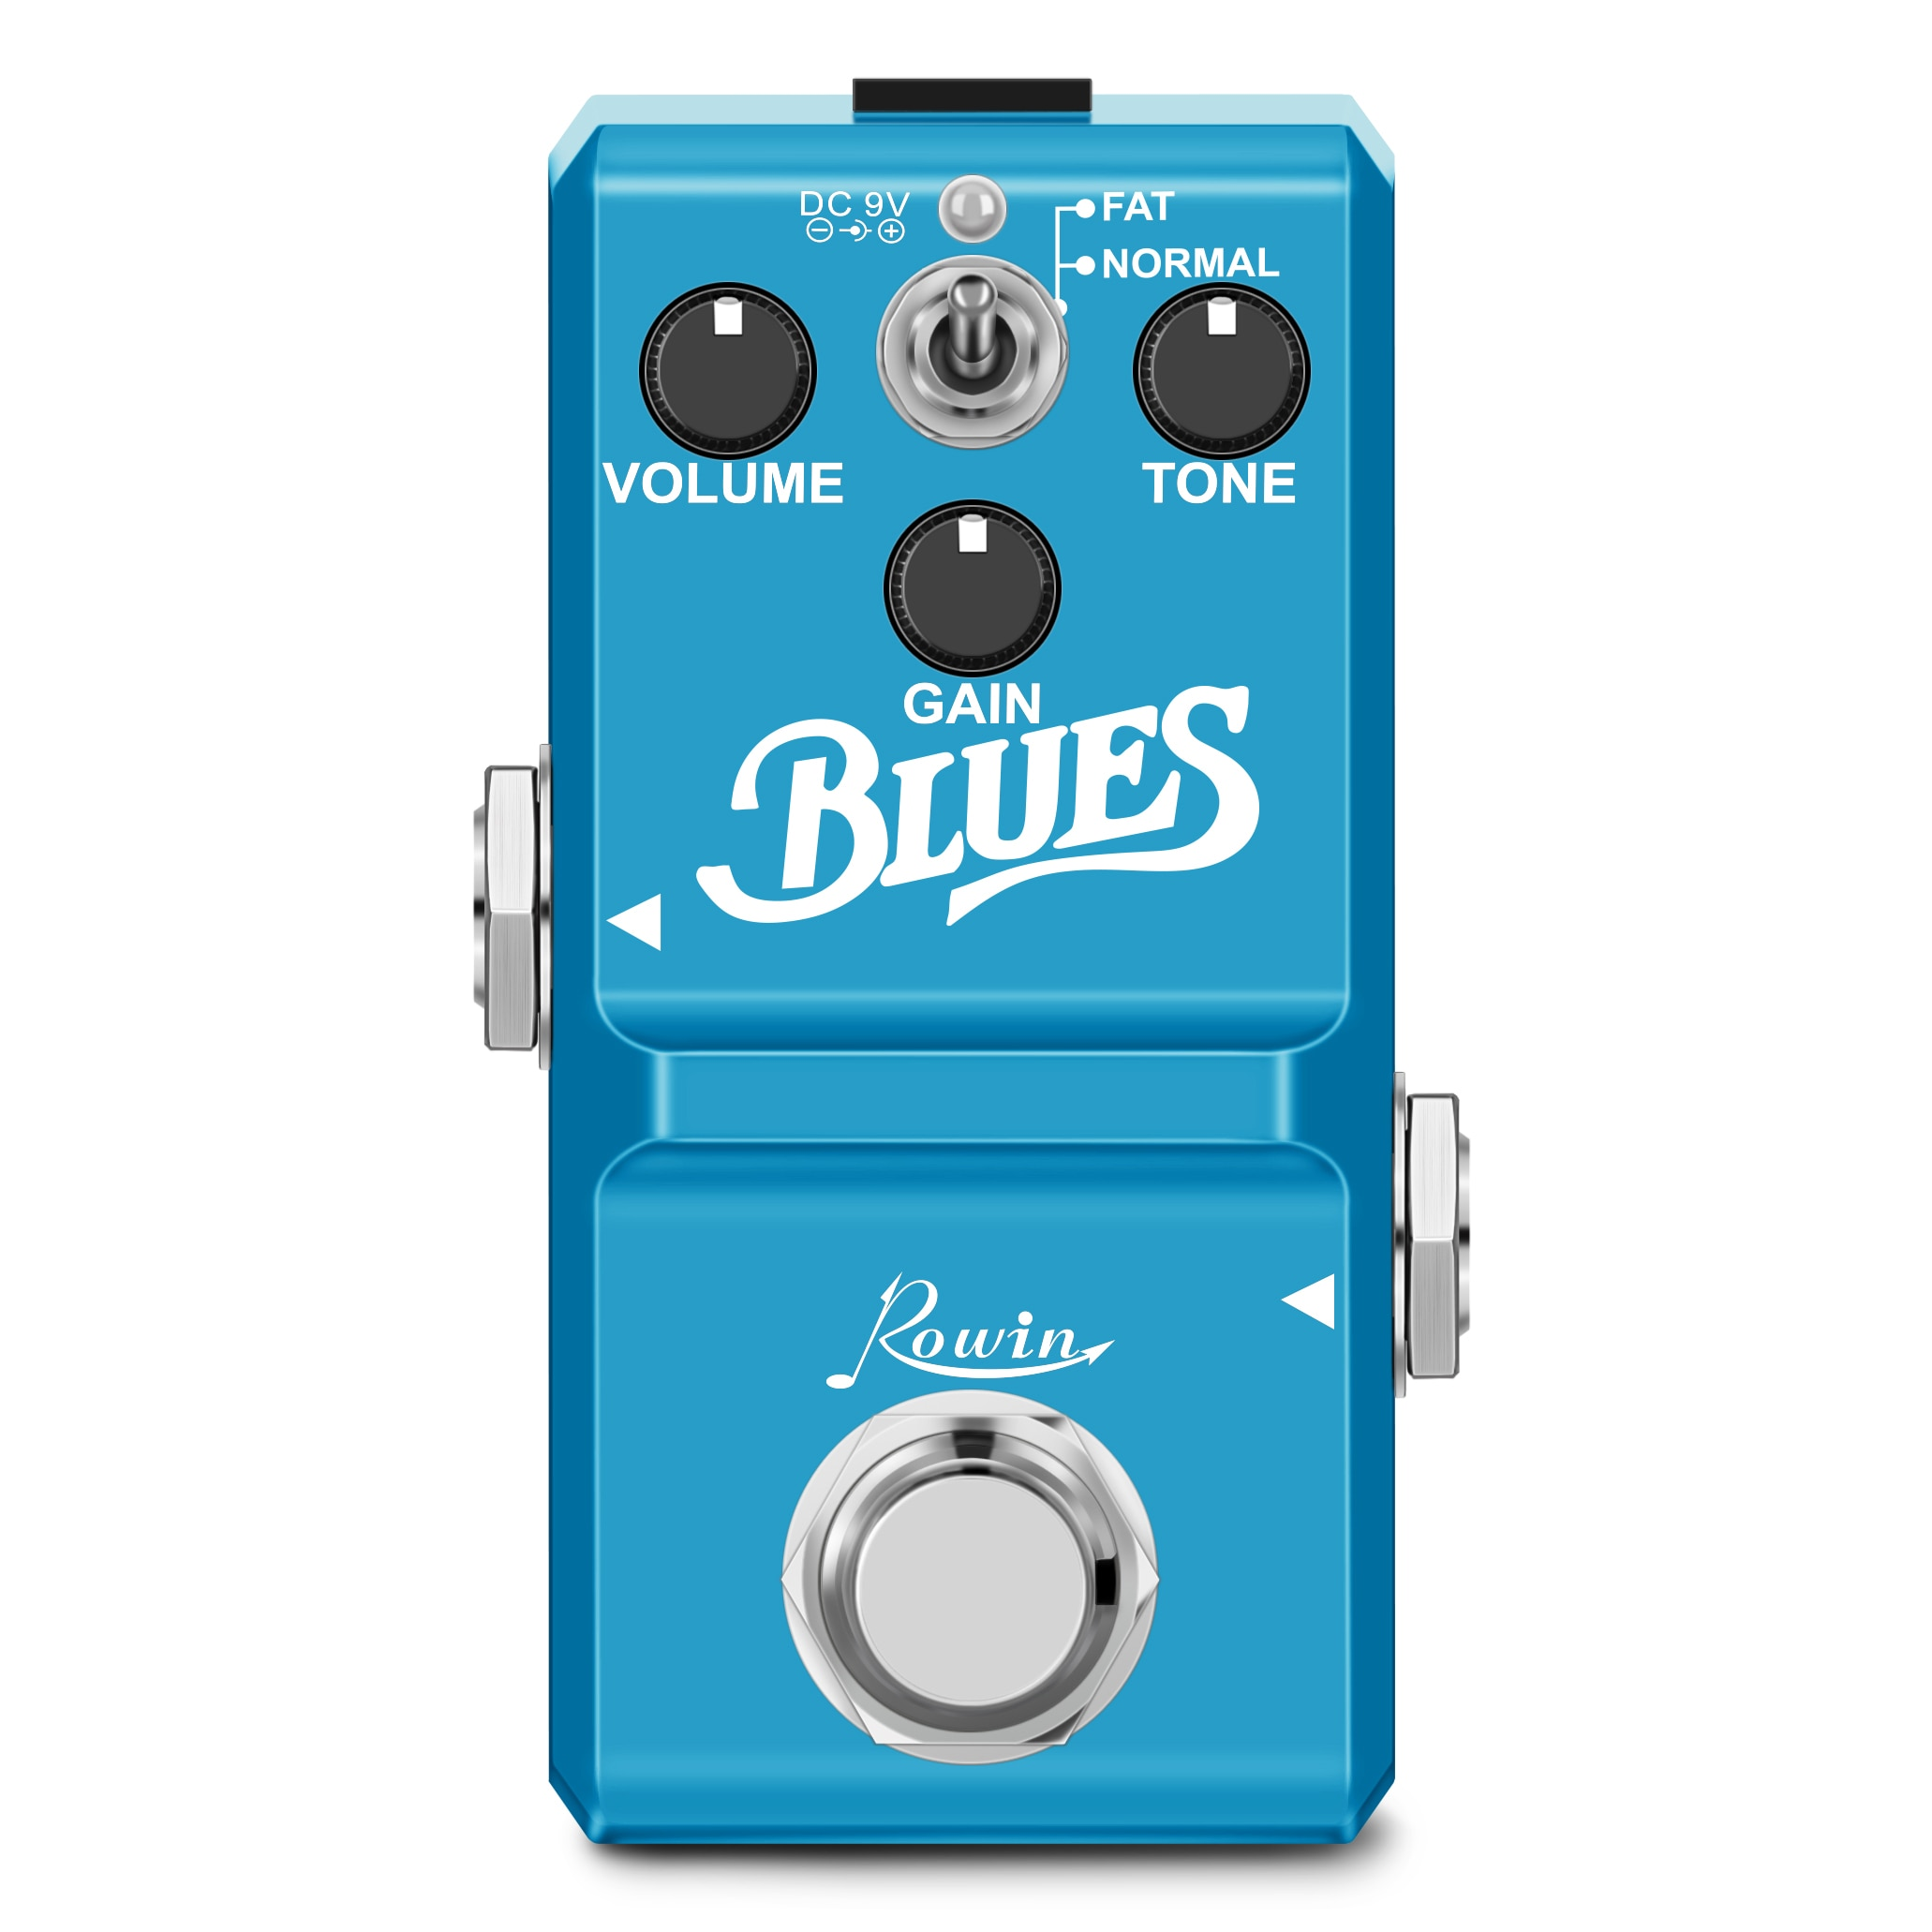 Rowin Guitar Pedals Blues LN-321 for Full Mental Shell Electric Guitar and Bass Effect Pedal